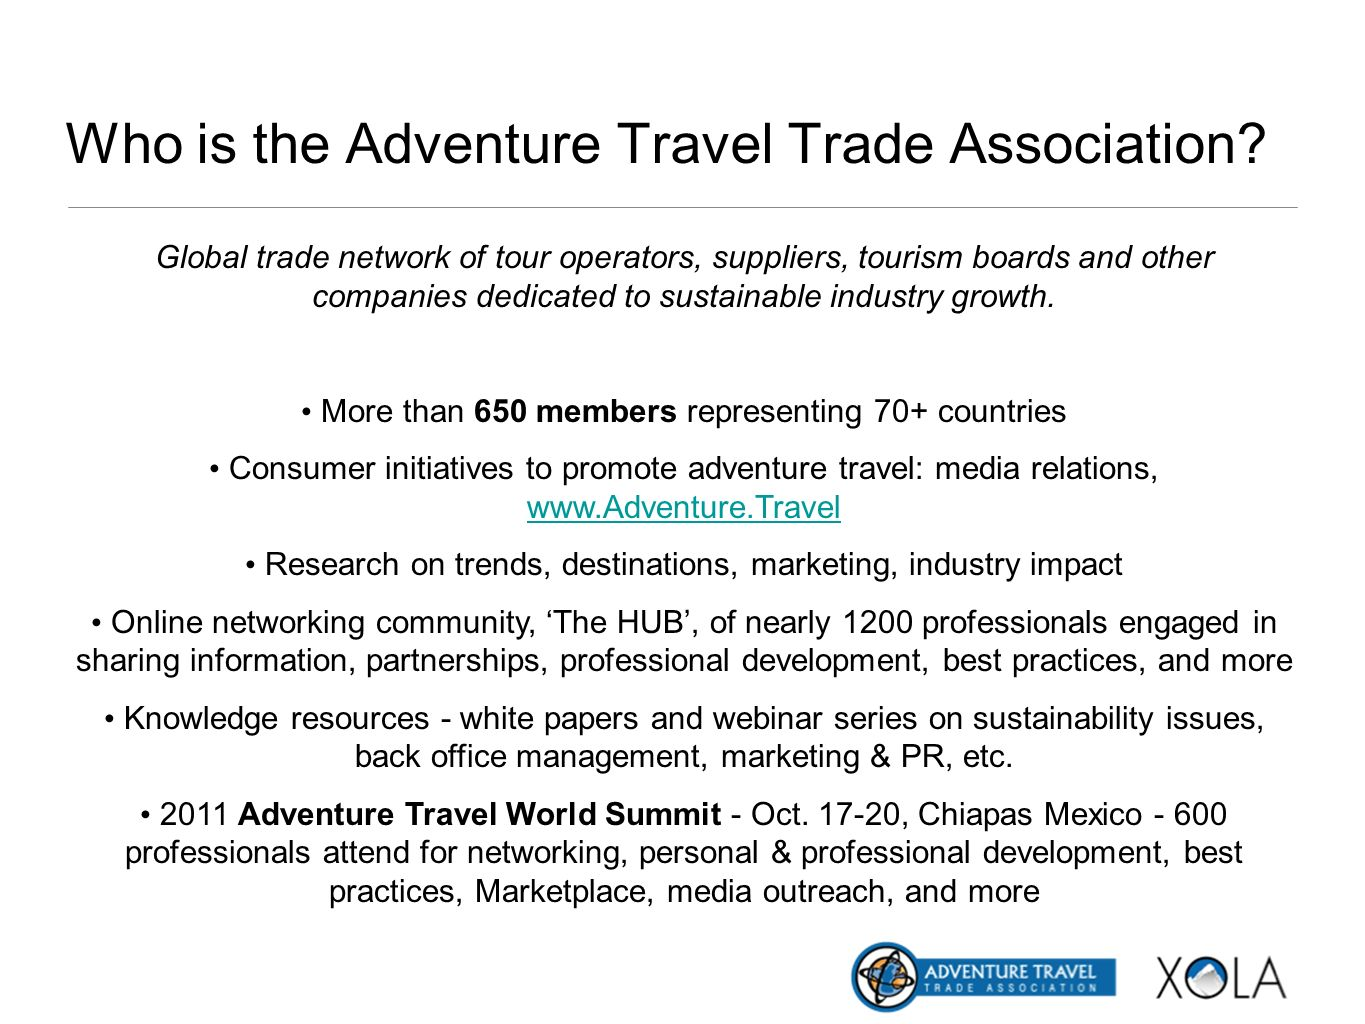 Who is the Adventure Travel Trade Association